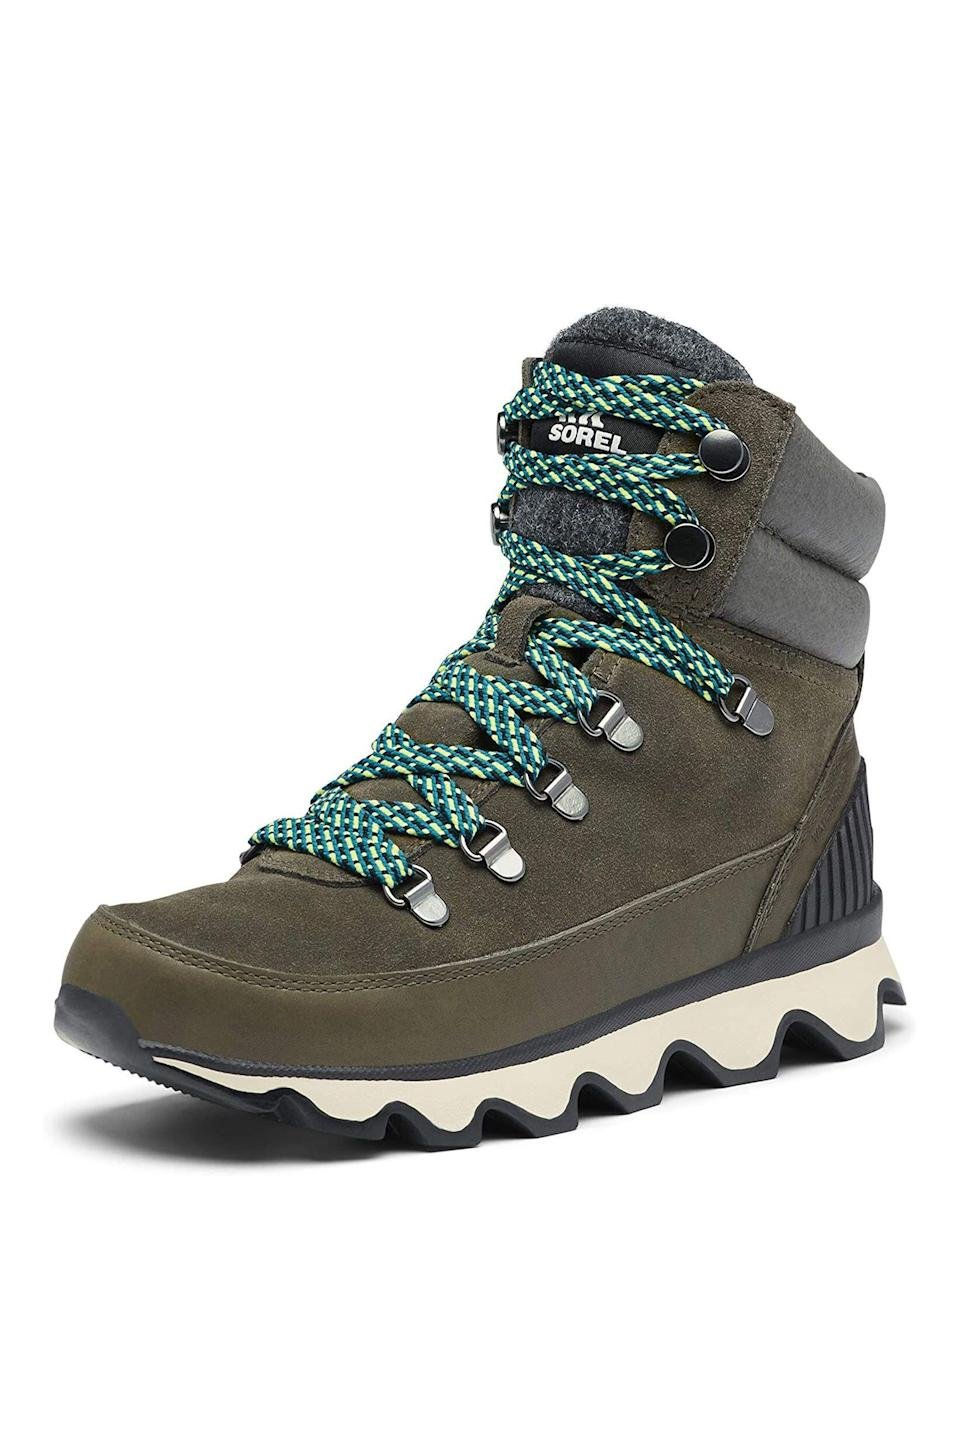 """<p><strong>Sorel</strong></p><p>amazon.com</p><p><strong>$164.95</strong></p><p><a href=""""https://www.amazon.com/dp/B08B7WWC2T?tag=syn-yahoo-20&ascsubtag=%5Bartid%7C10056.g.34620153%5Bsrc%7Cyahoo-us"""" rel=""""nofollow noopener"""" target=""""_blank"""" data-ylk=""""slk:shop it"""" class=""""link rapid-noclick-resp"""">shop it</a></p><p>Behold, a pair of waterproof sneakers that are practical and chic in equal measure. Not only will these keep toes from freezing in the rain and snow, but also they have traction that makes them well-suited for hikes (especially the ones where you'd maybe like to try and get a good outdoorsy 'gram). </p>"""